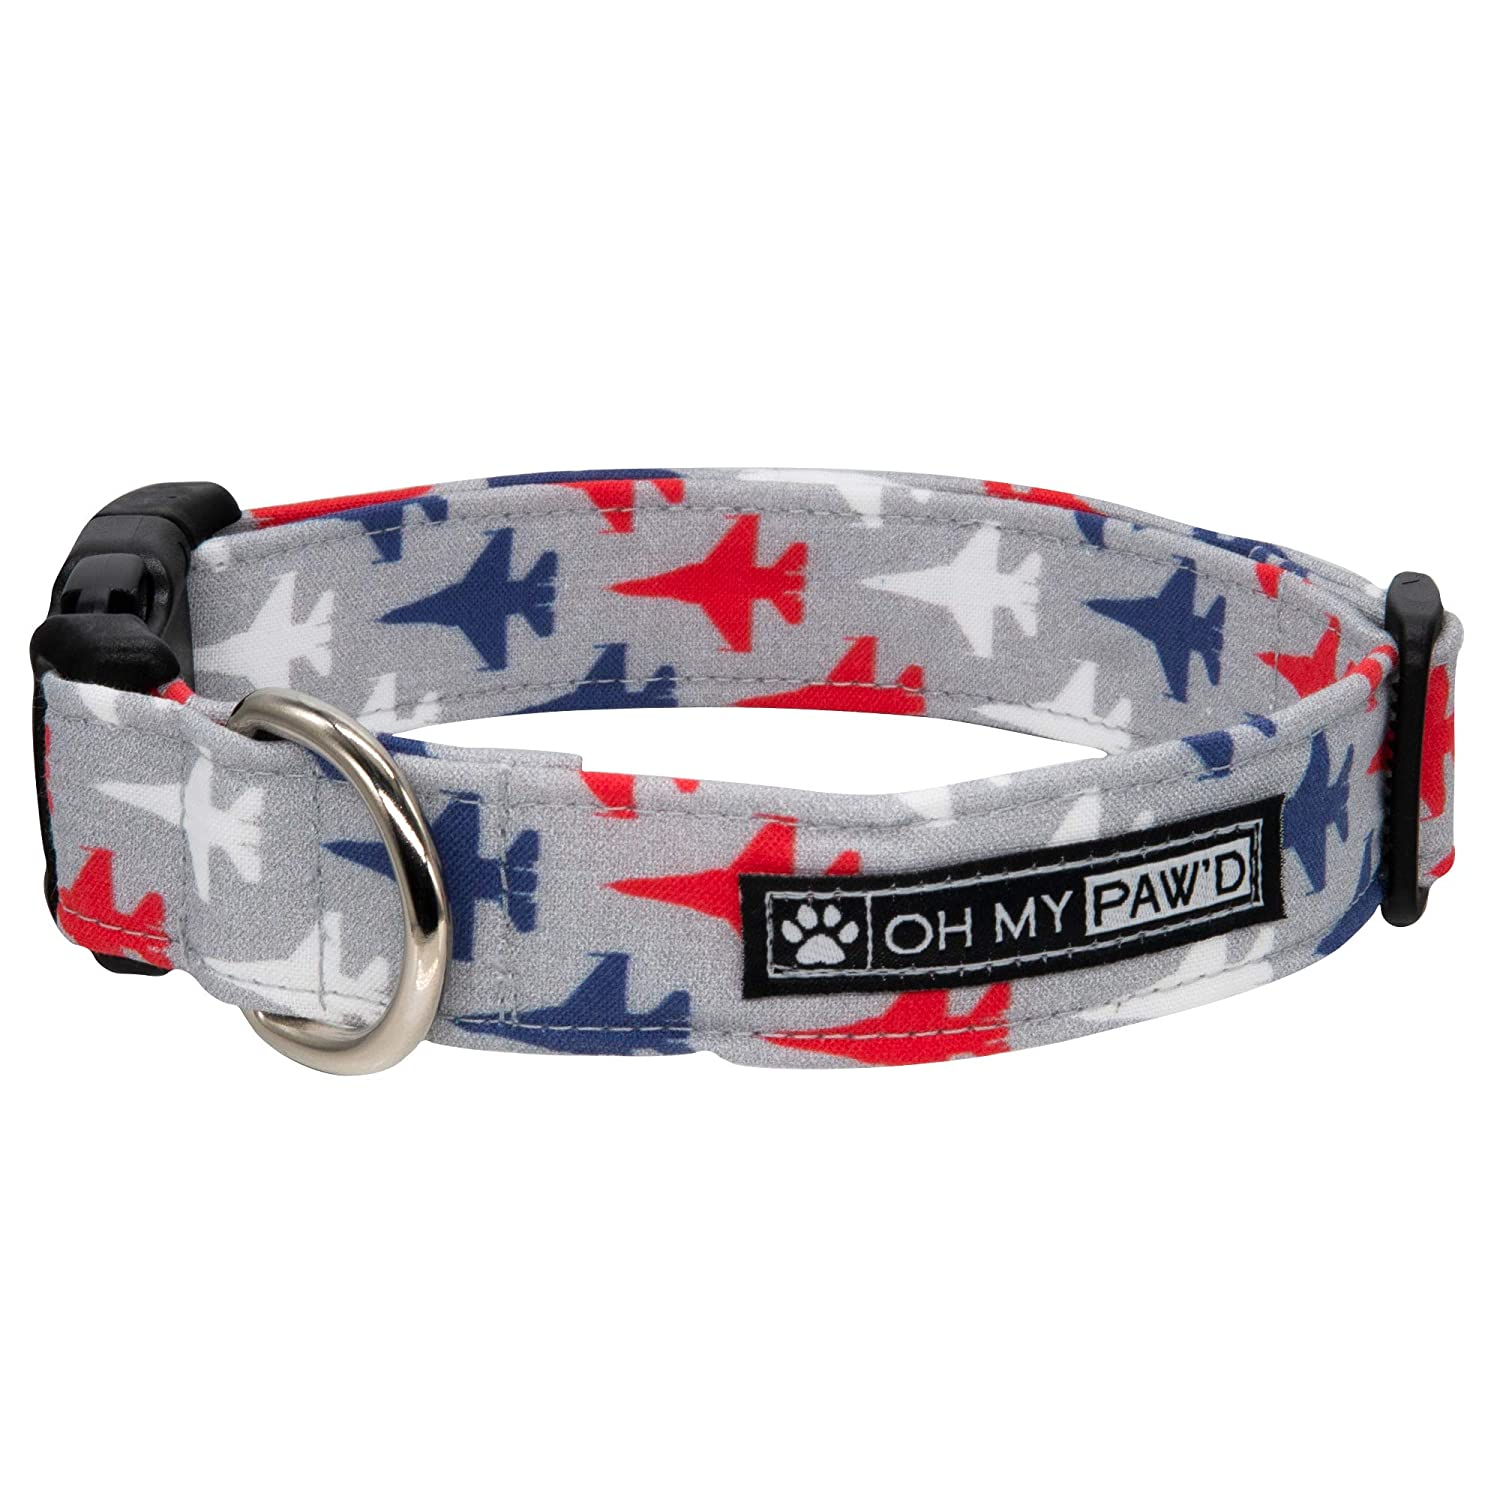 Fighter Jet Collar for Pets Size Large 1 Inch Wide and 17-25 Inches Long - Hand Made Dog Collar by Oh My Paw'd